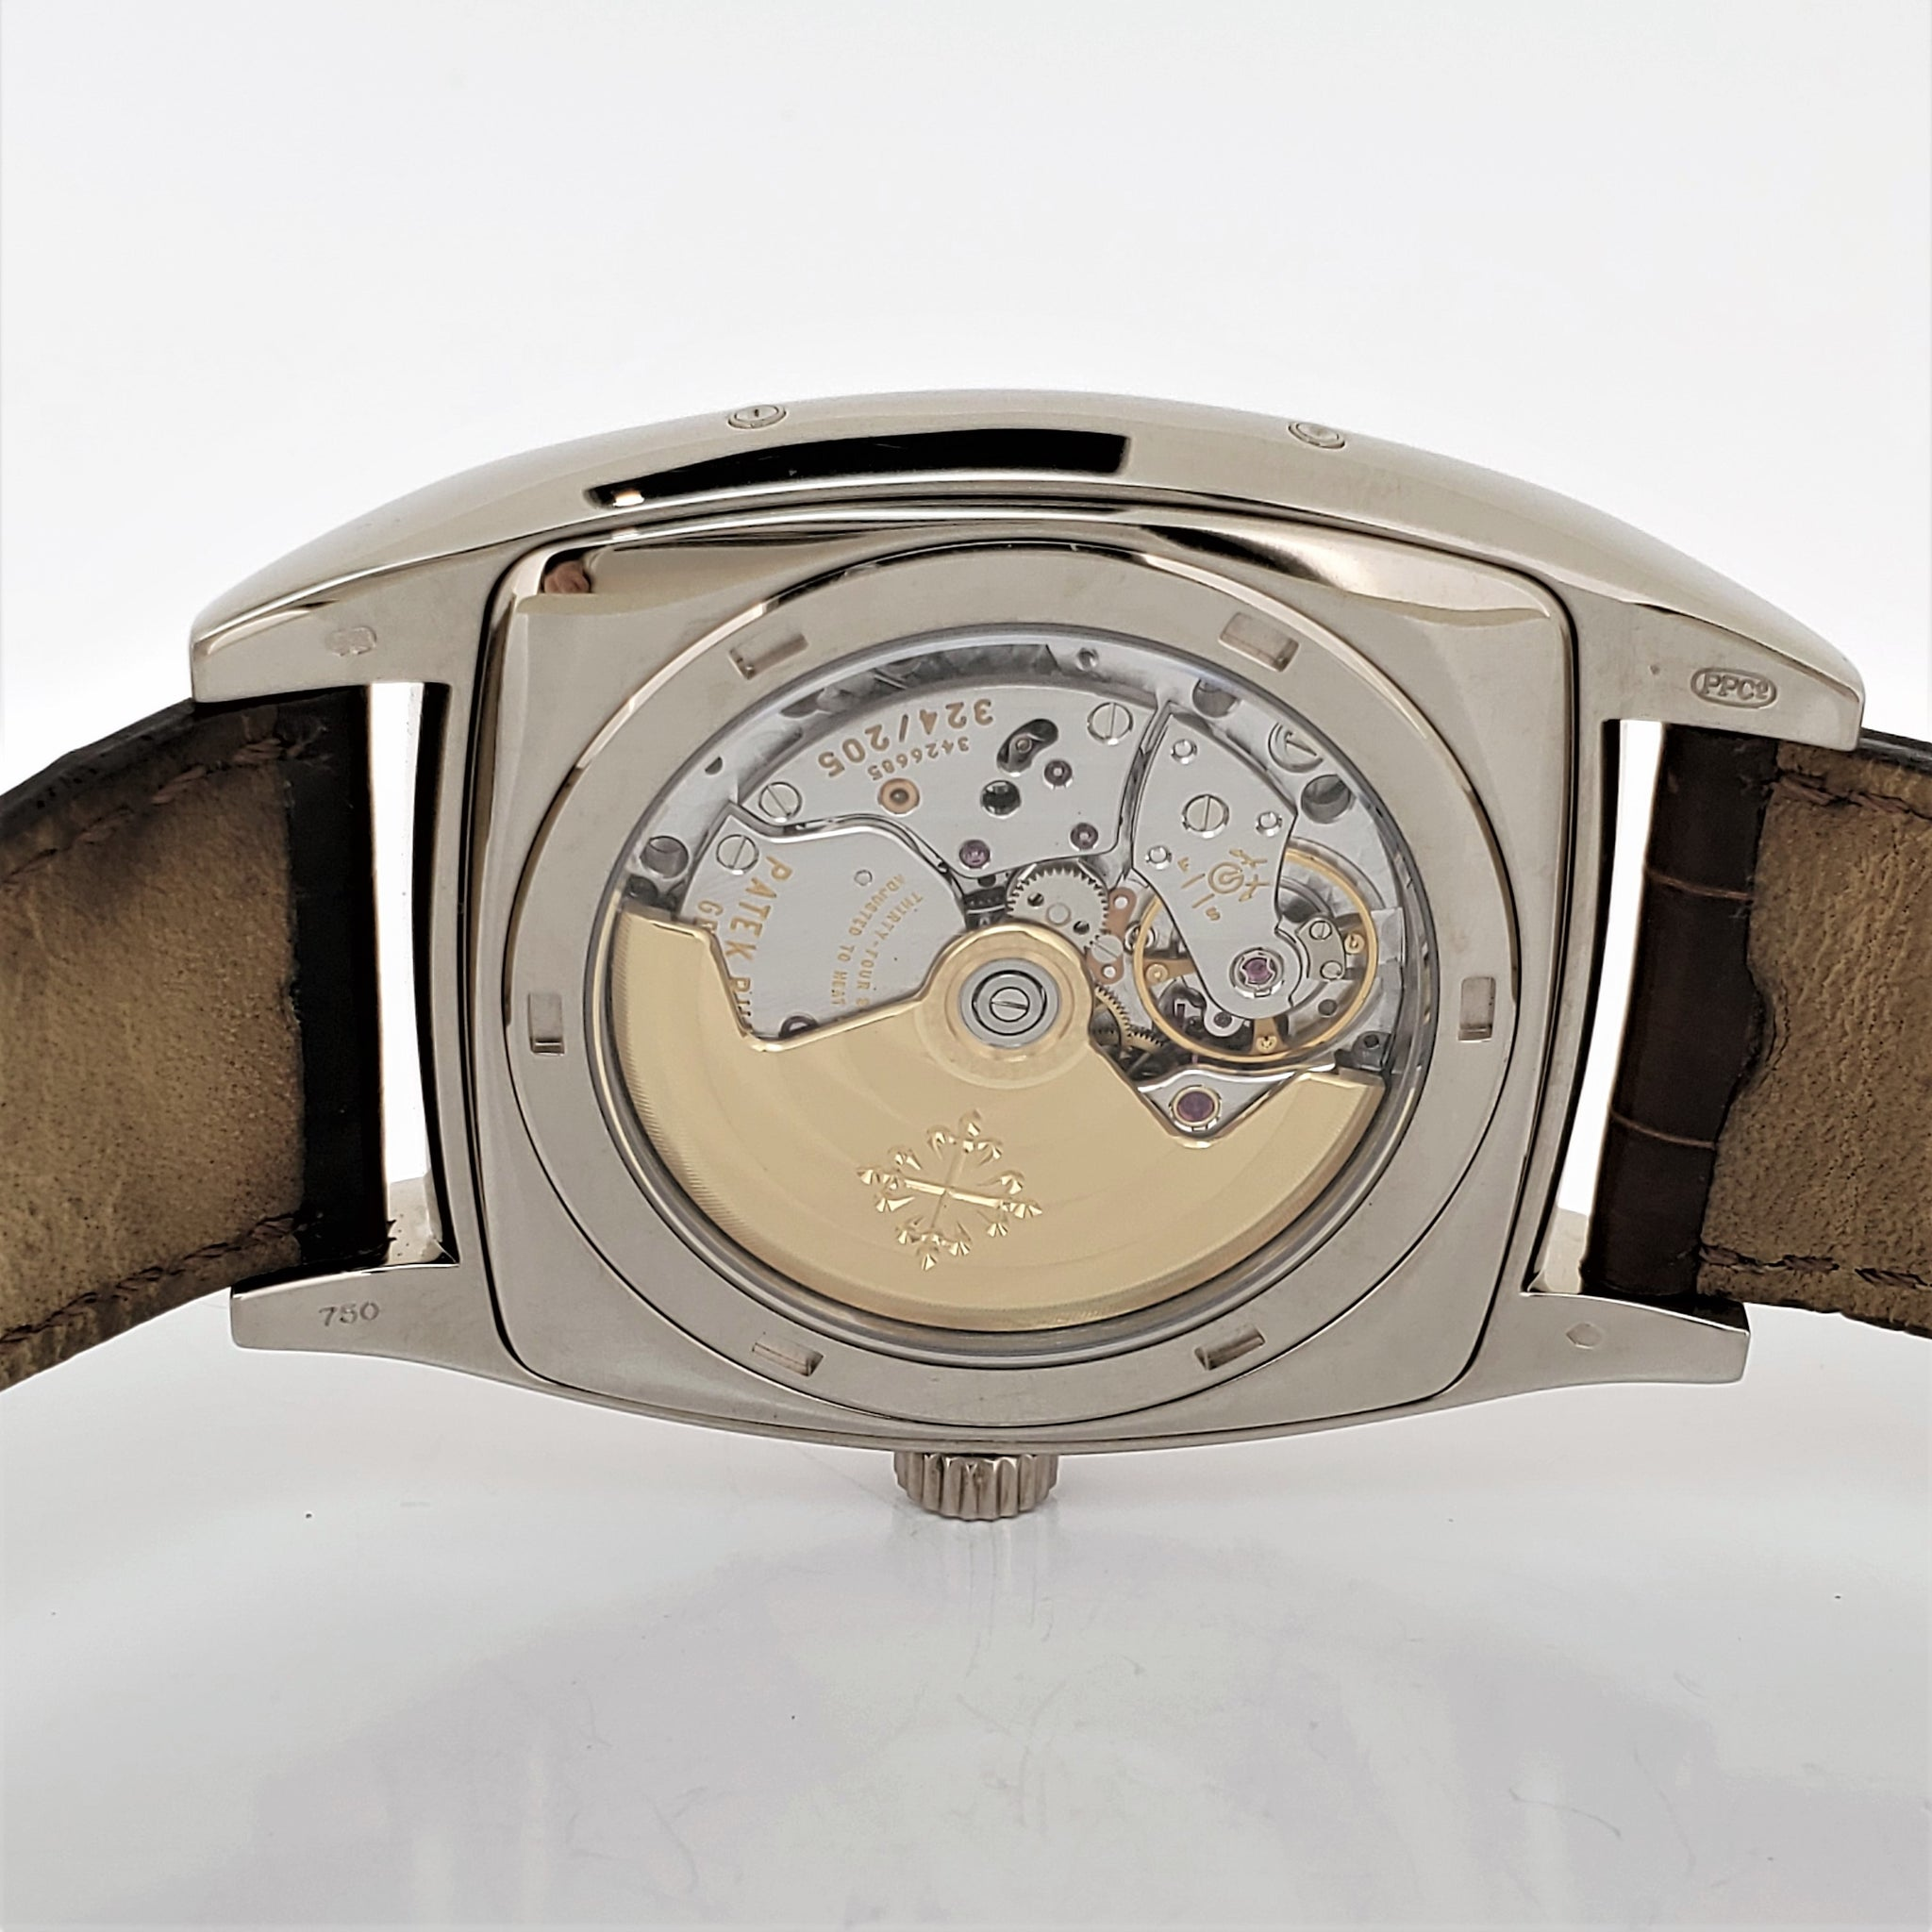 Patek Philippe 5135G Annual Calendar Watch